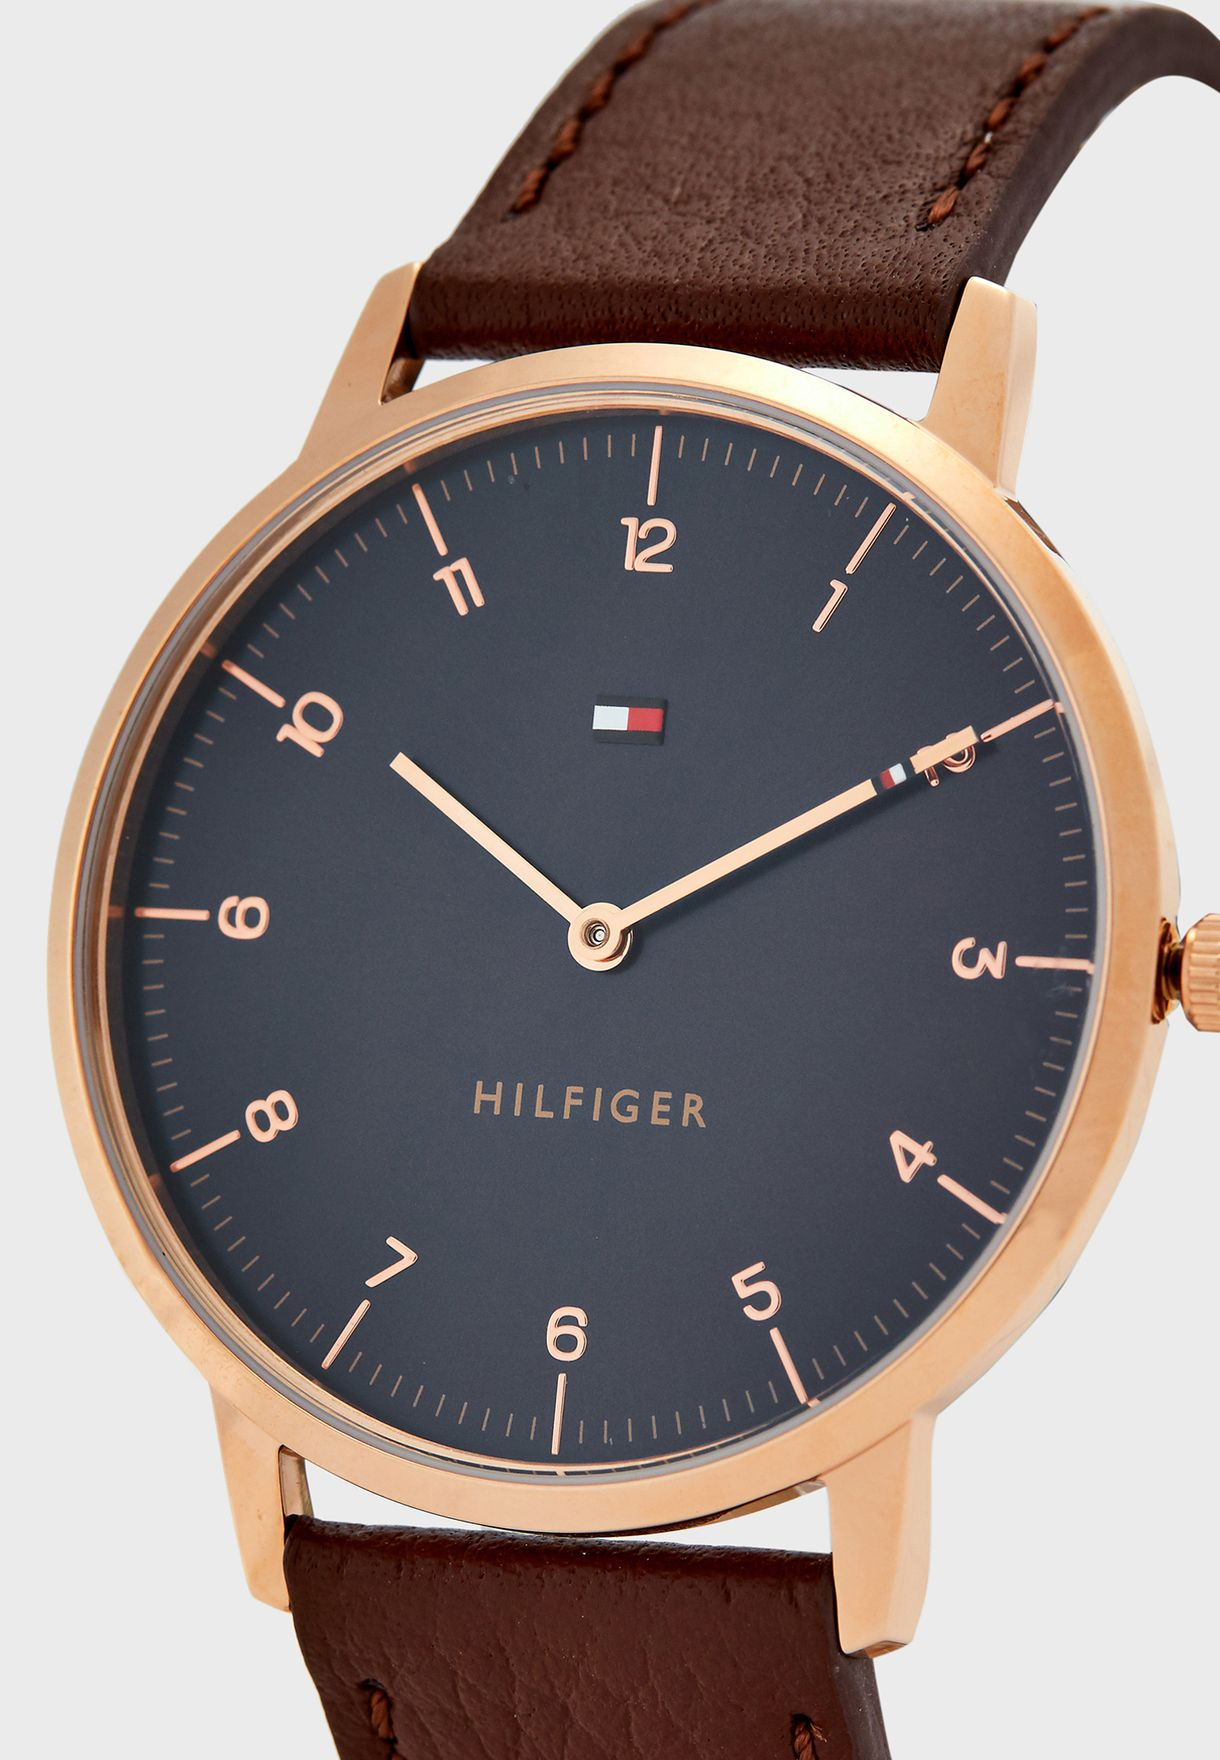 1791582 Leather Strap Analog Watch